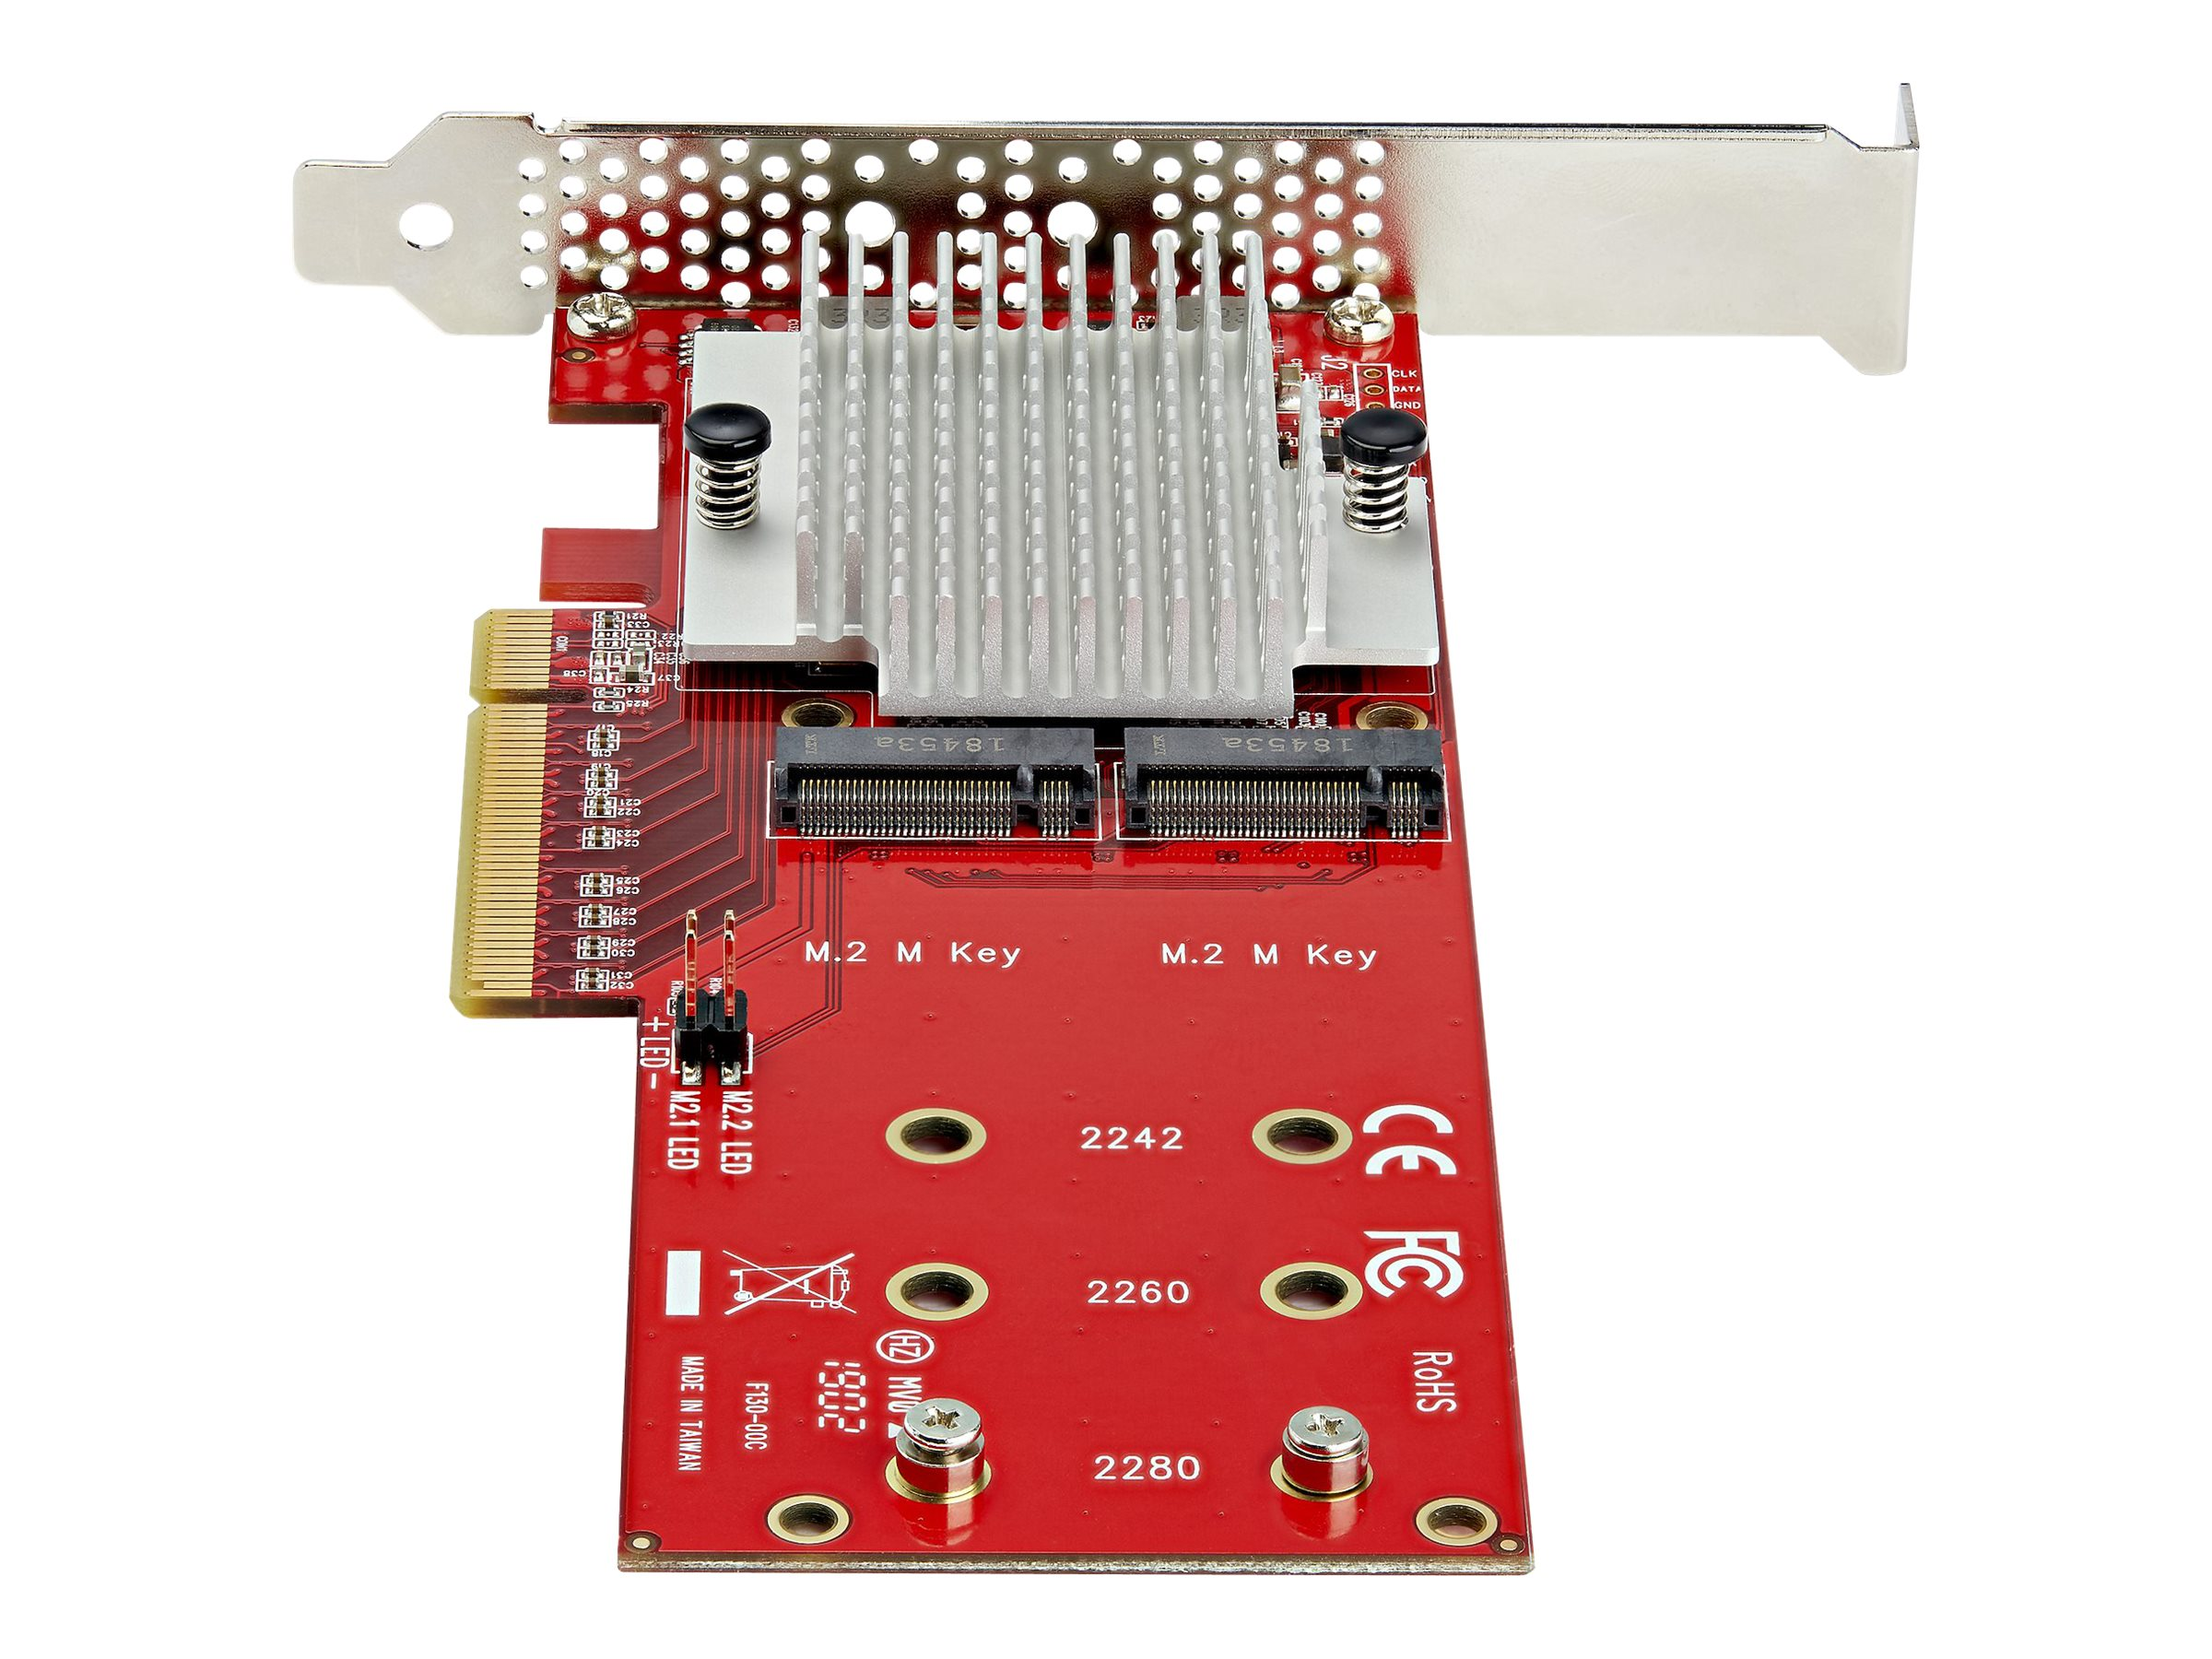 StarTech.com Dual M.2 PCIe SSD Adapter Card - x8 / x16 Dual NVMe or AHCI M.2 SSD to PCI Express 3.0 - M.2 NGFF PCIe (m-key) Compatible - Schnittstellenadapter - M.2 - Expansion Slot to M.2